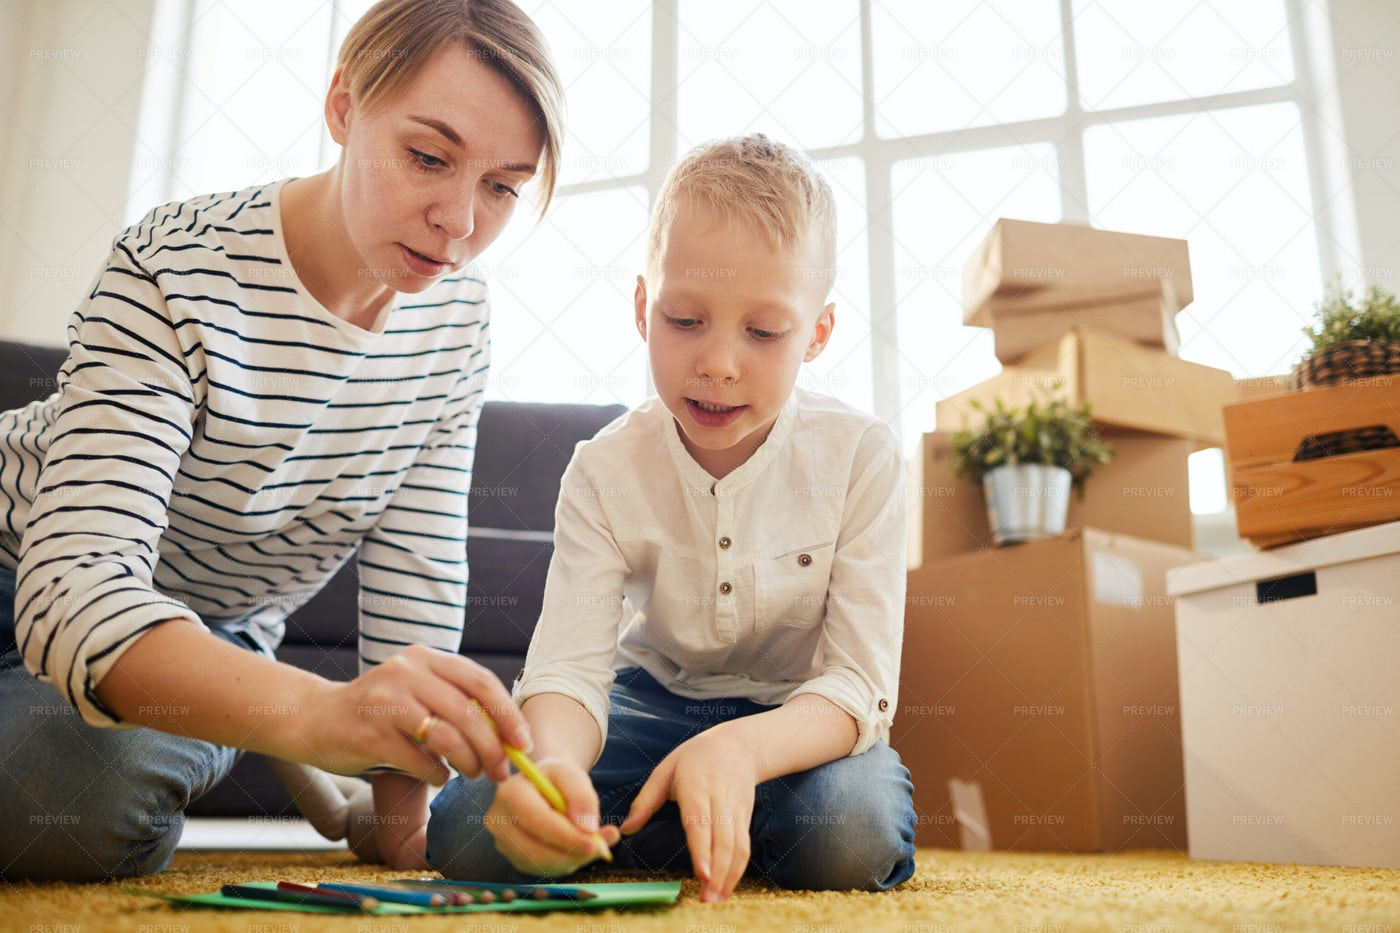 Developing Drawing Skill Of Child: Stock Photos